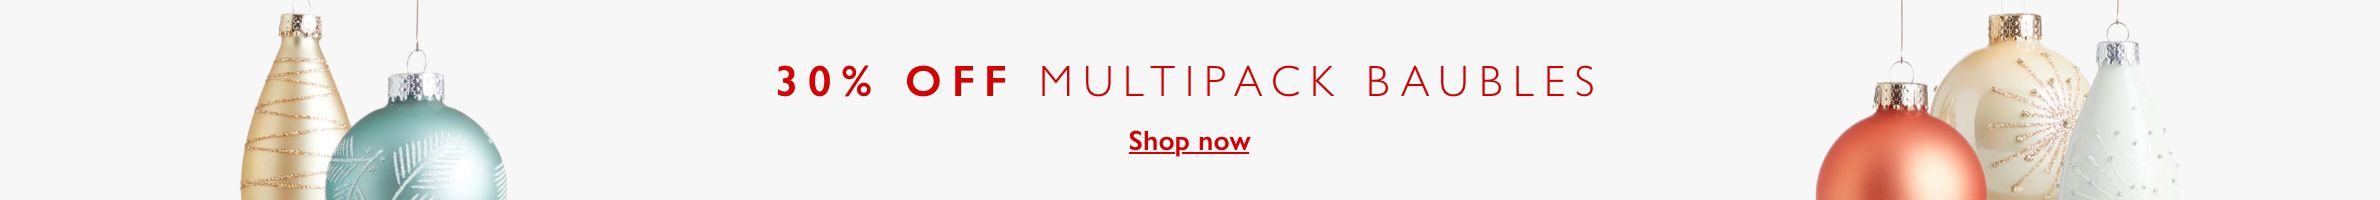 30% off Multipack Baubles